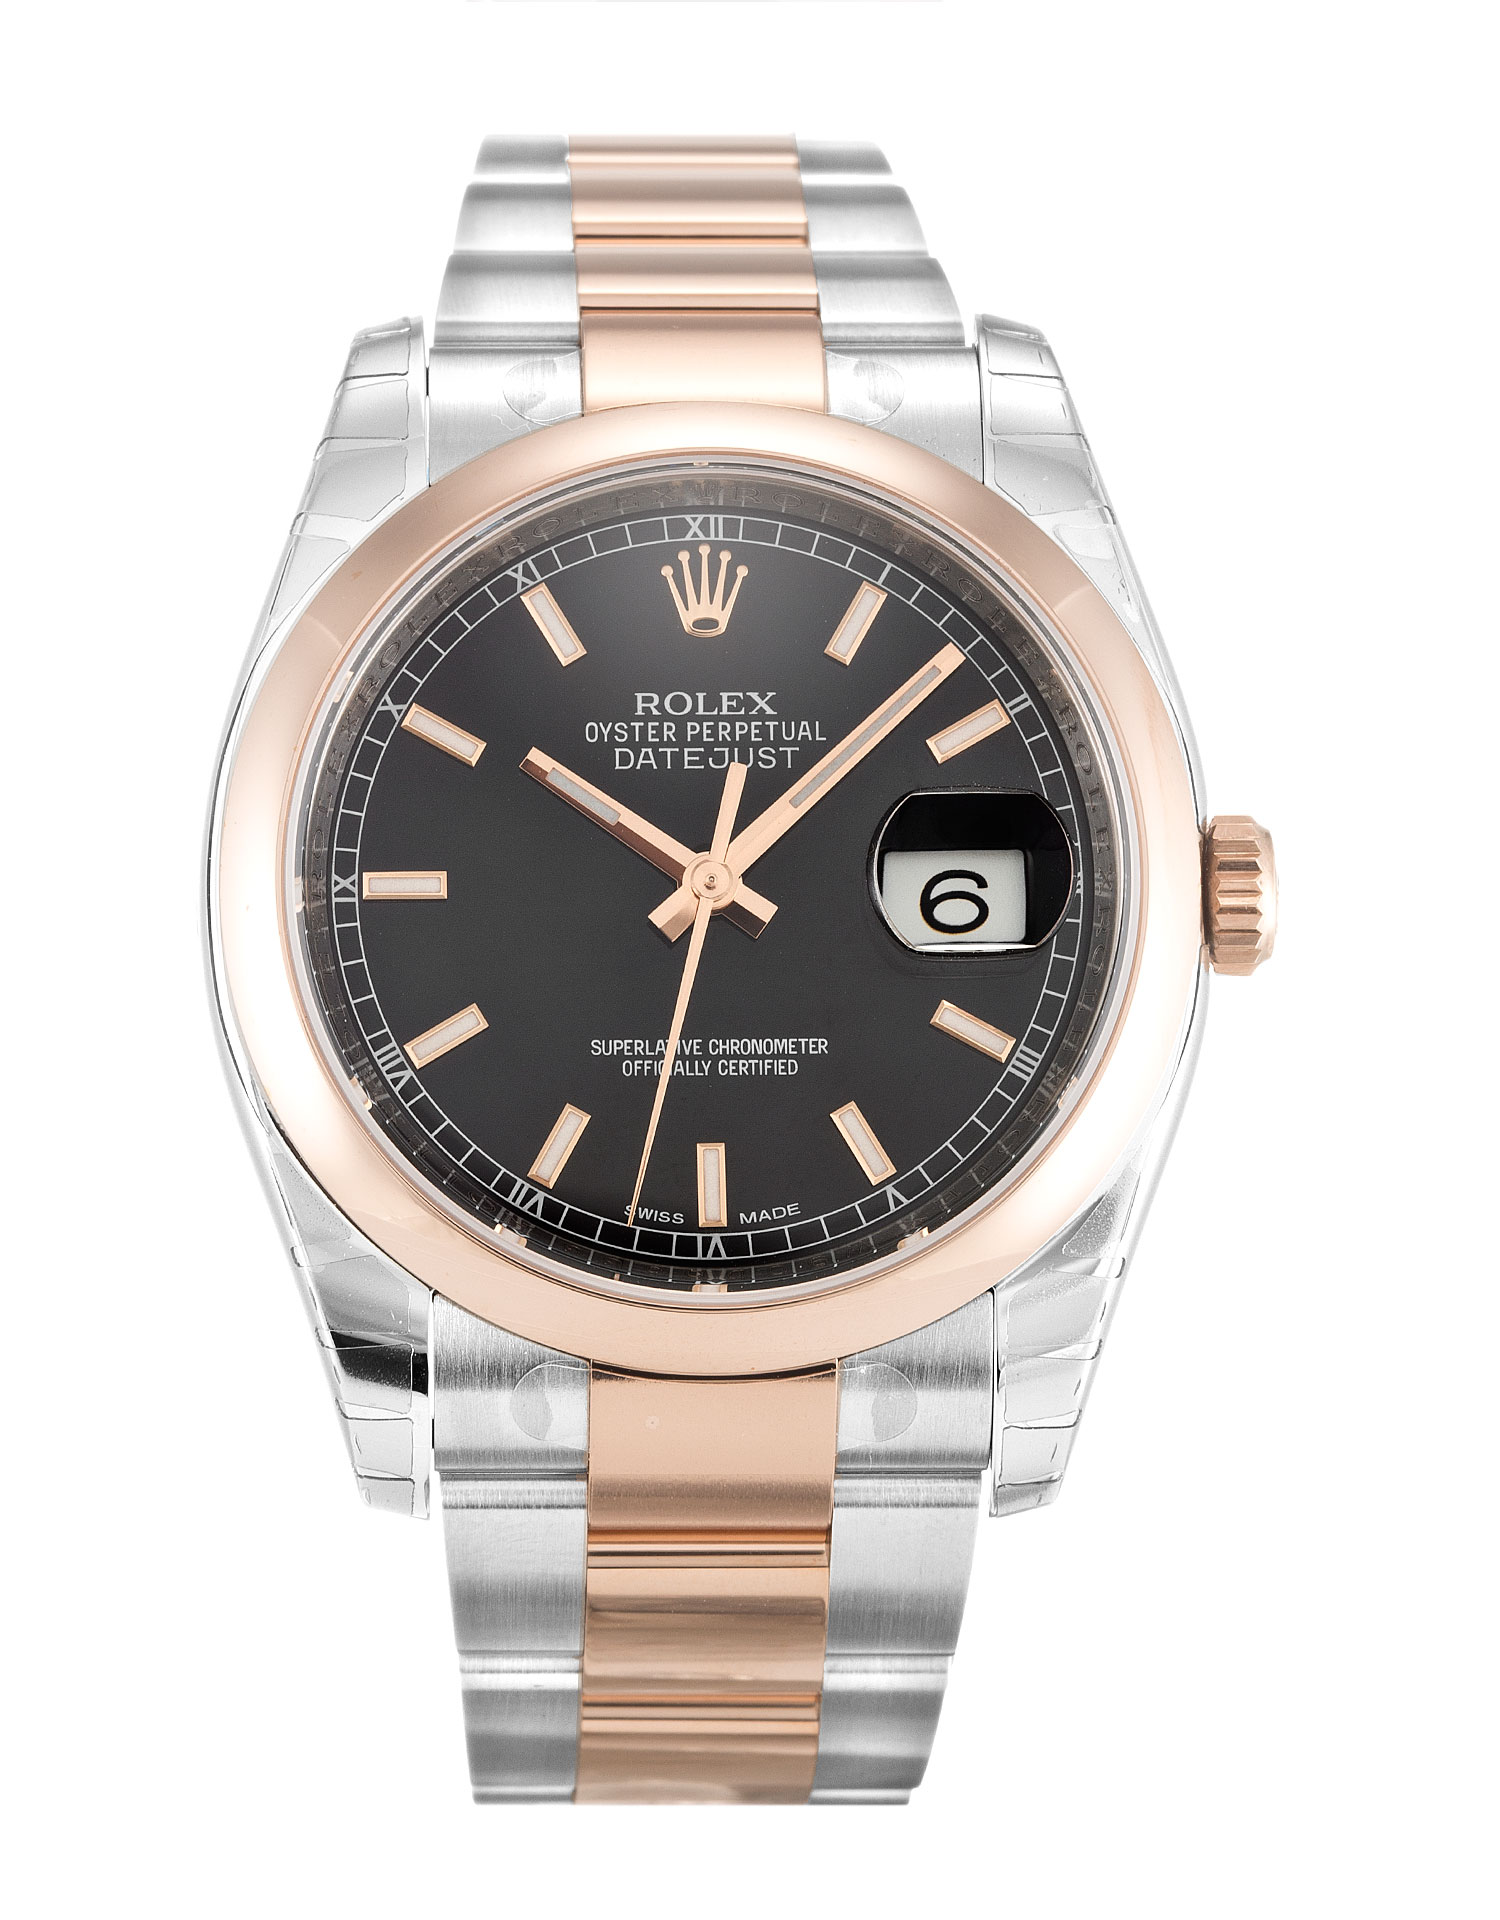 Rolex Datejust 116201 Mens 36 Mm Steel & Rose Gold Case Automatic Movement – iapac.to